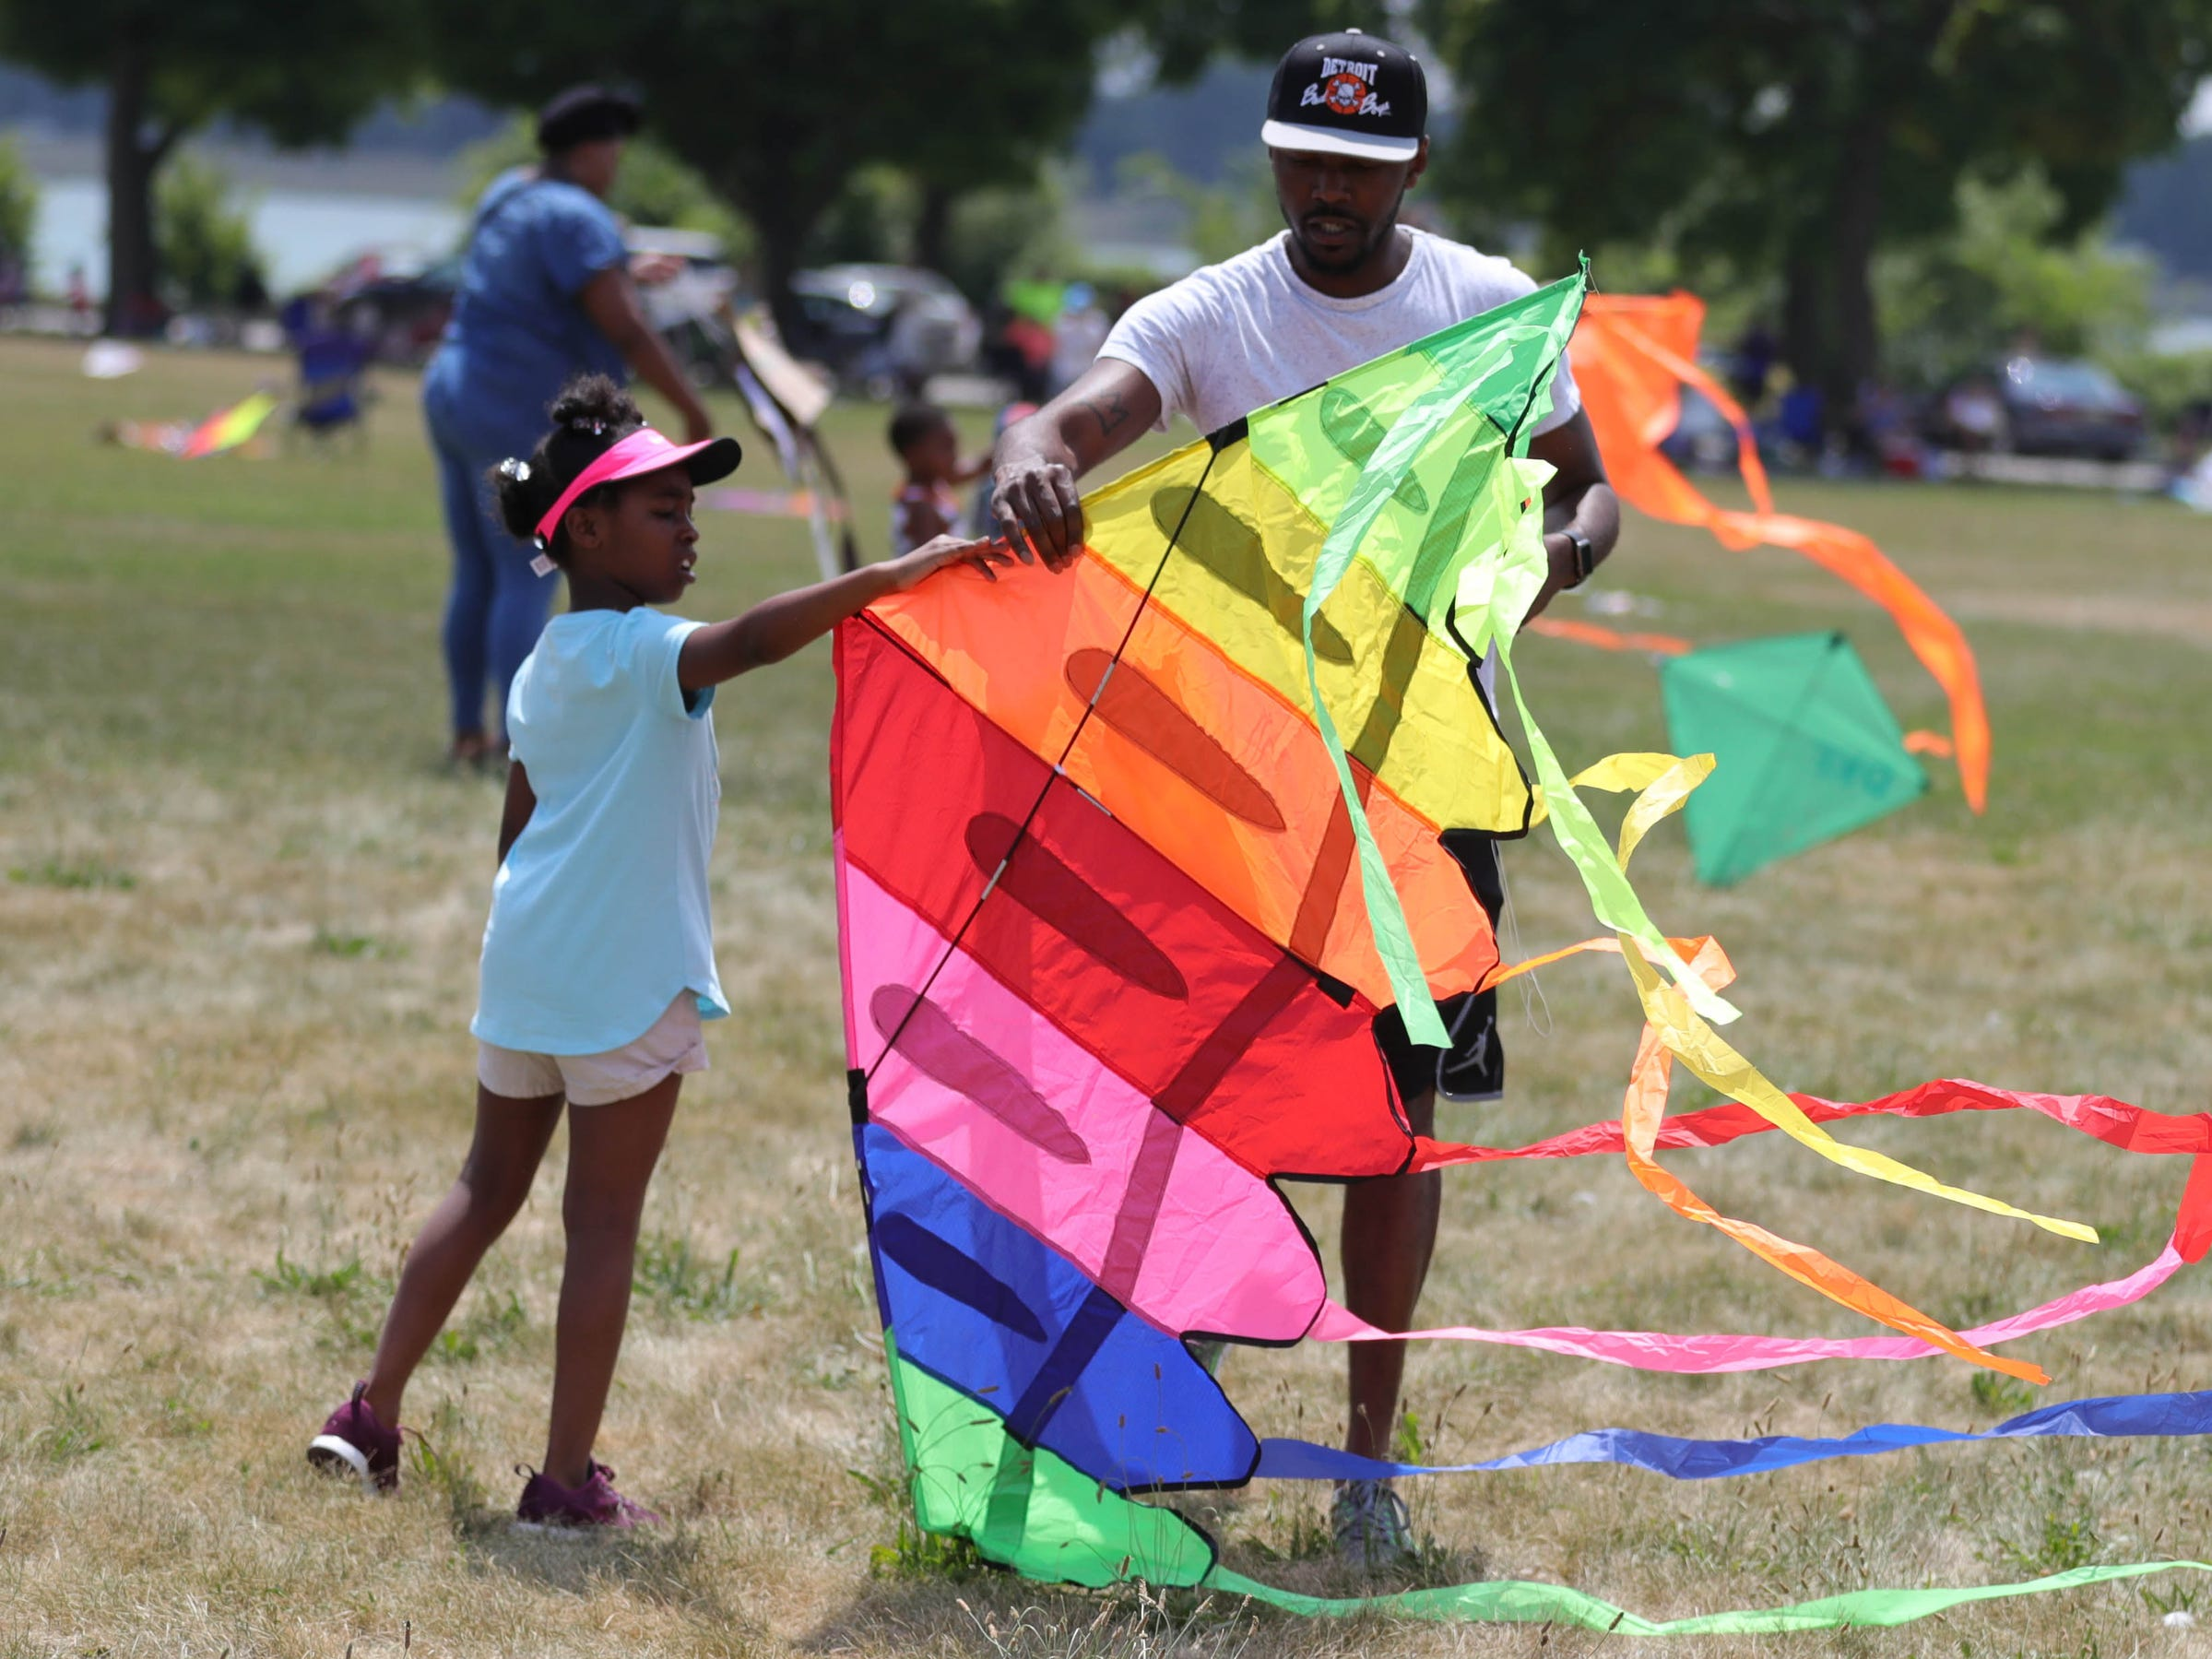 Cortez Settles and his daughter Linda Settles, 7, work on their kite during the Detroit Kite Festival on Belle Isle Sunday, July 15, 2018.